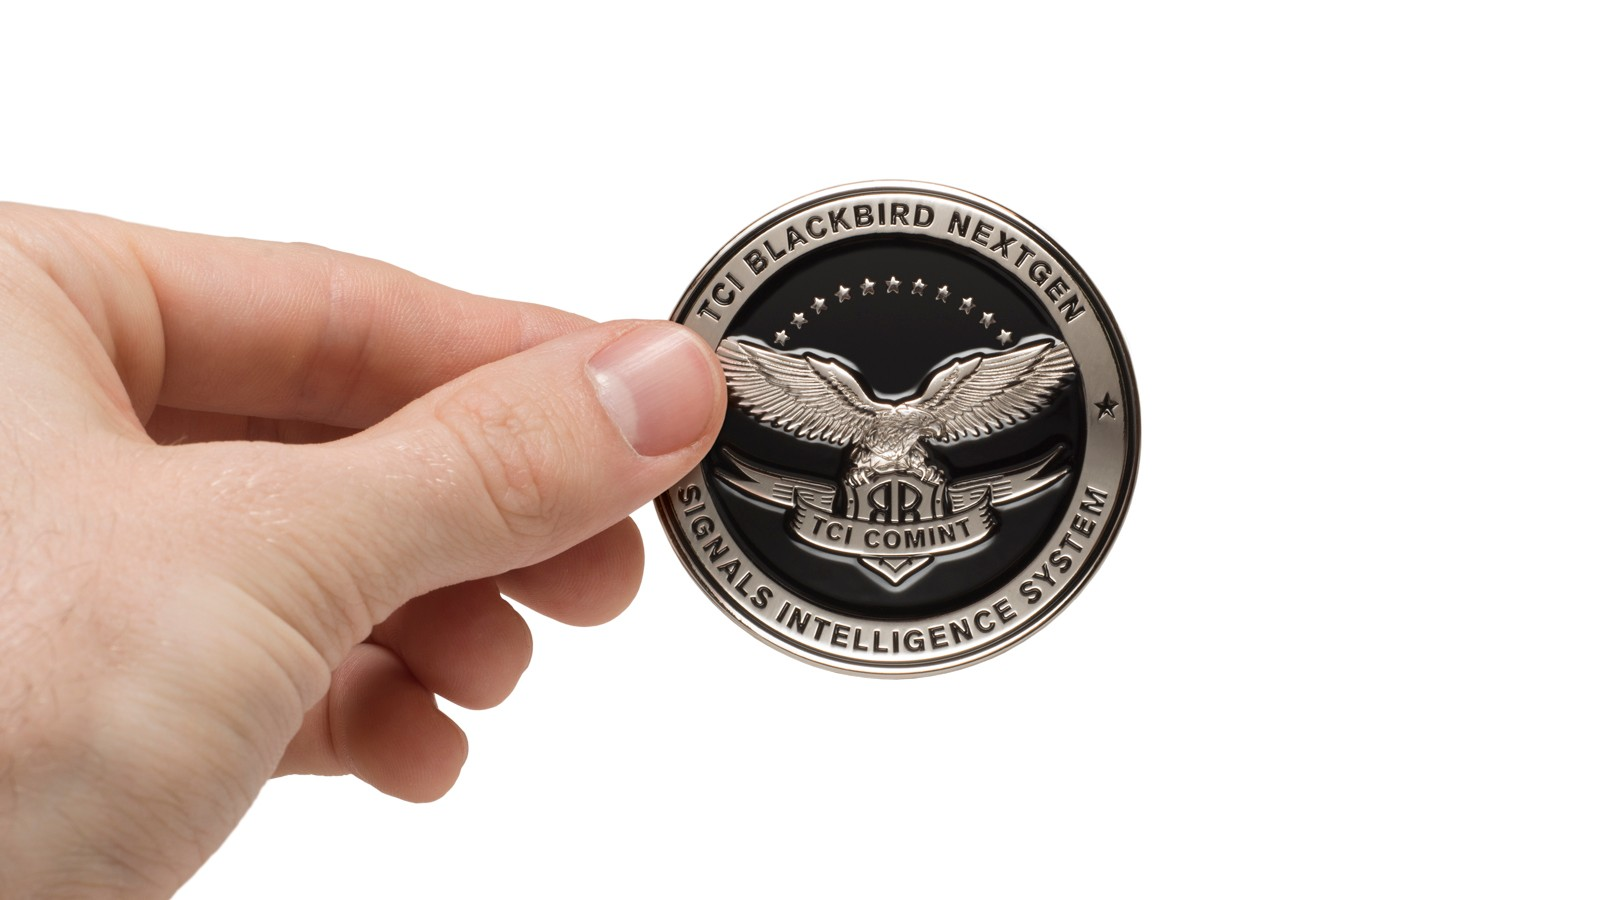 TCI BLACKBIRD NEXTGEN PROMOTIONAL COIN